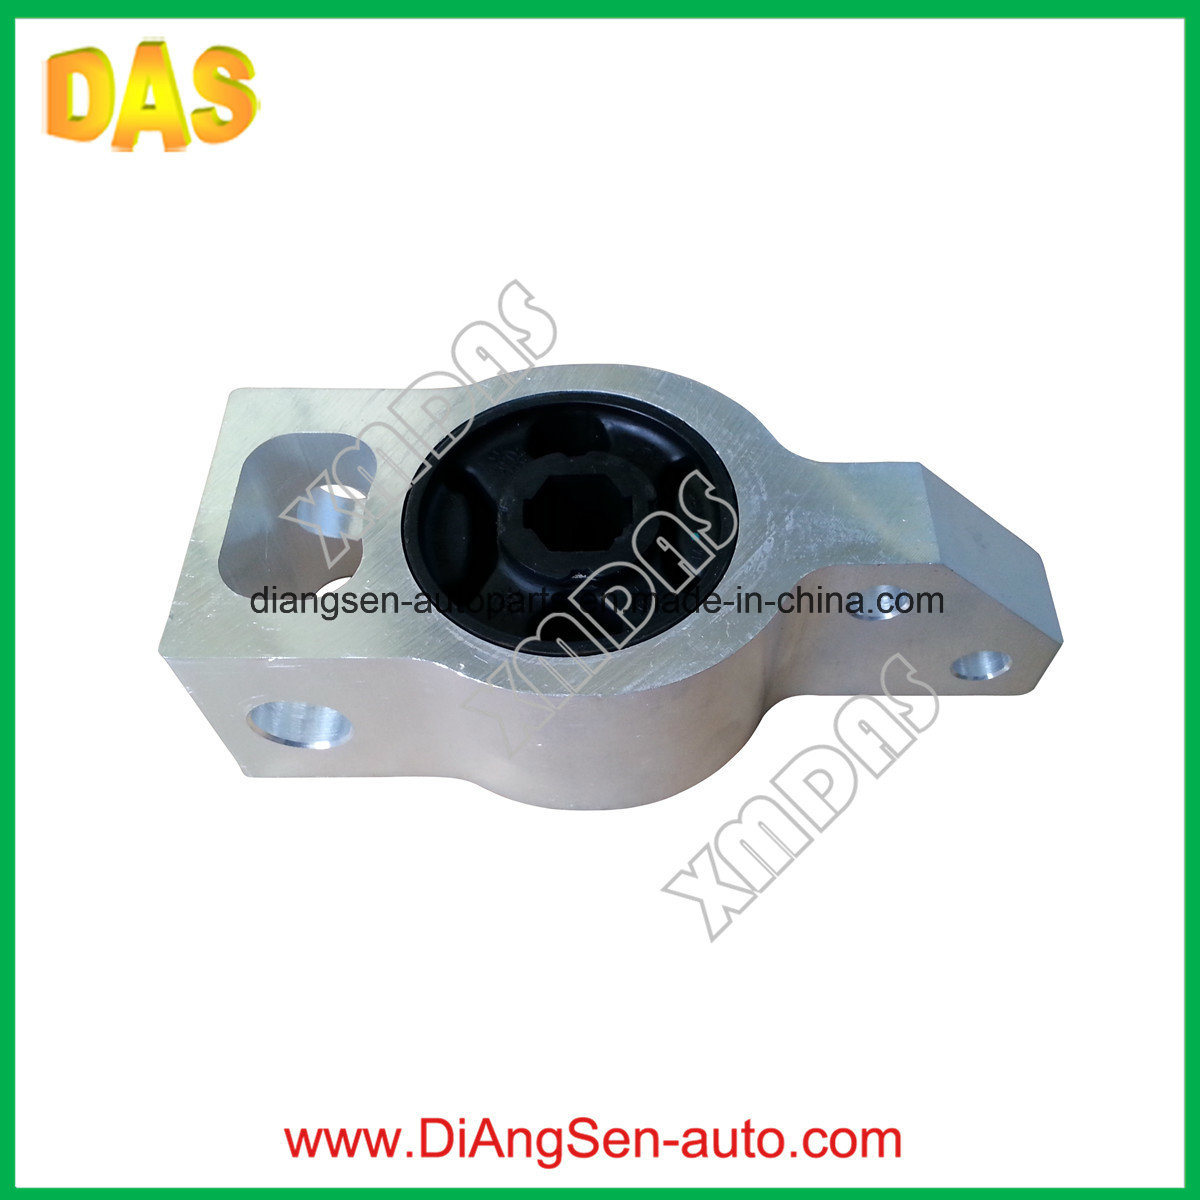 7D0-399-207B Quality Transmission Mount for 1997-2003 Volkswagon EuroVan 2.8L